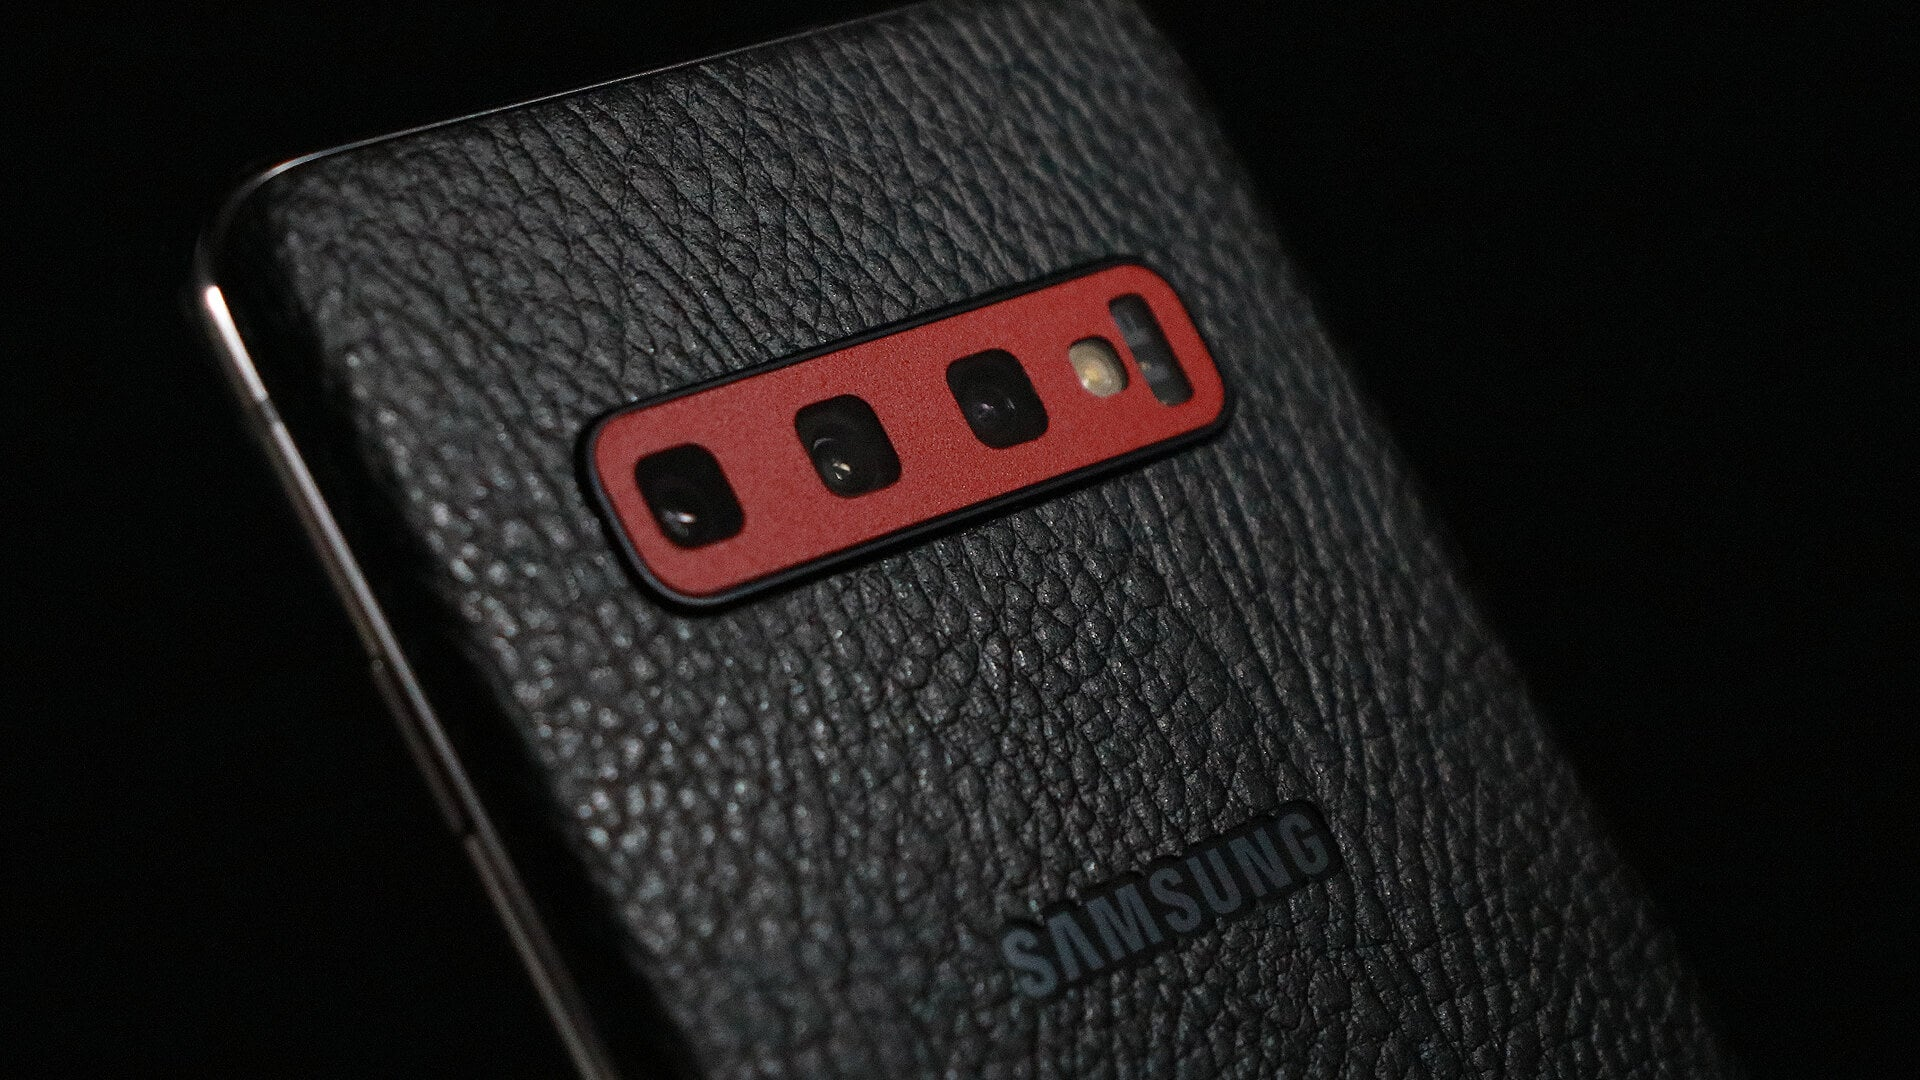 Samsung Galaxy S10 Black Leather Skins